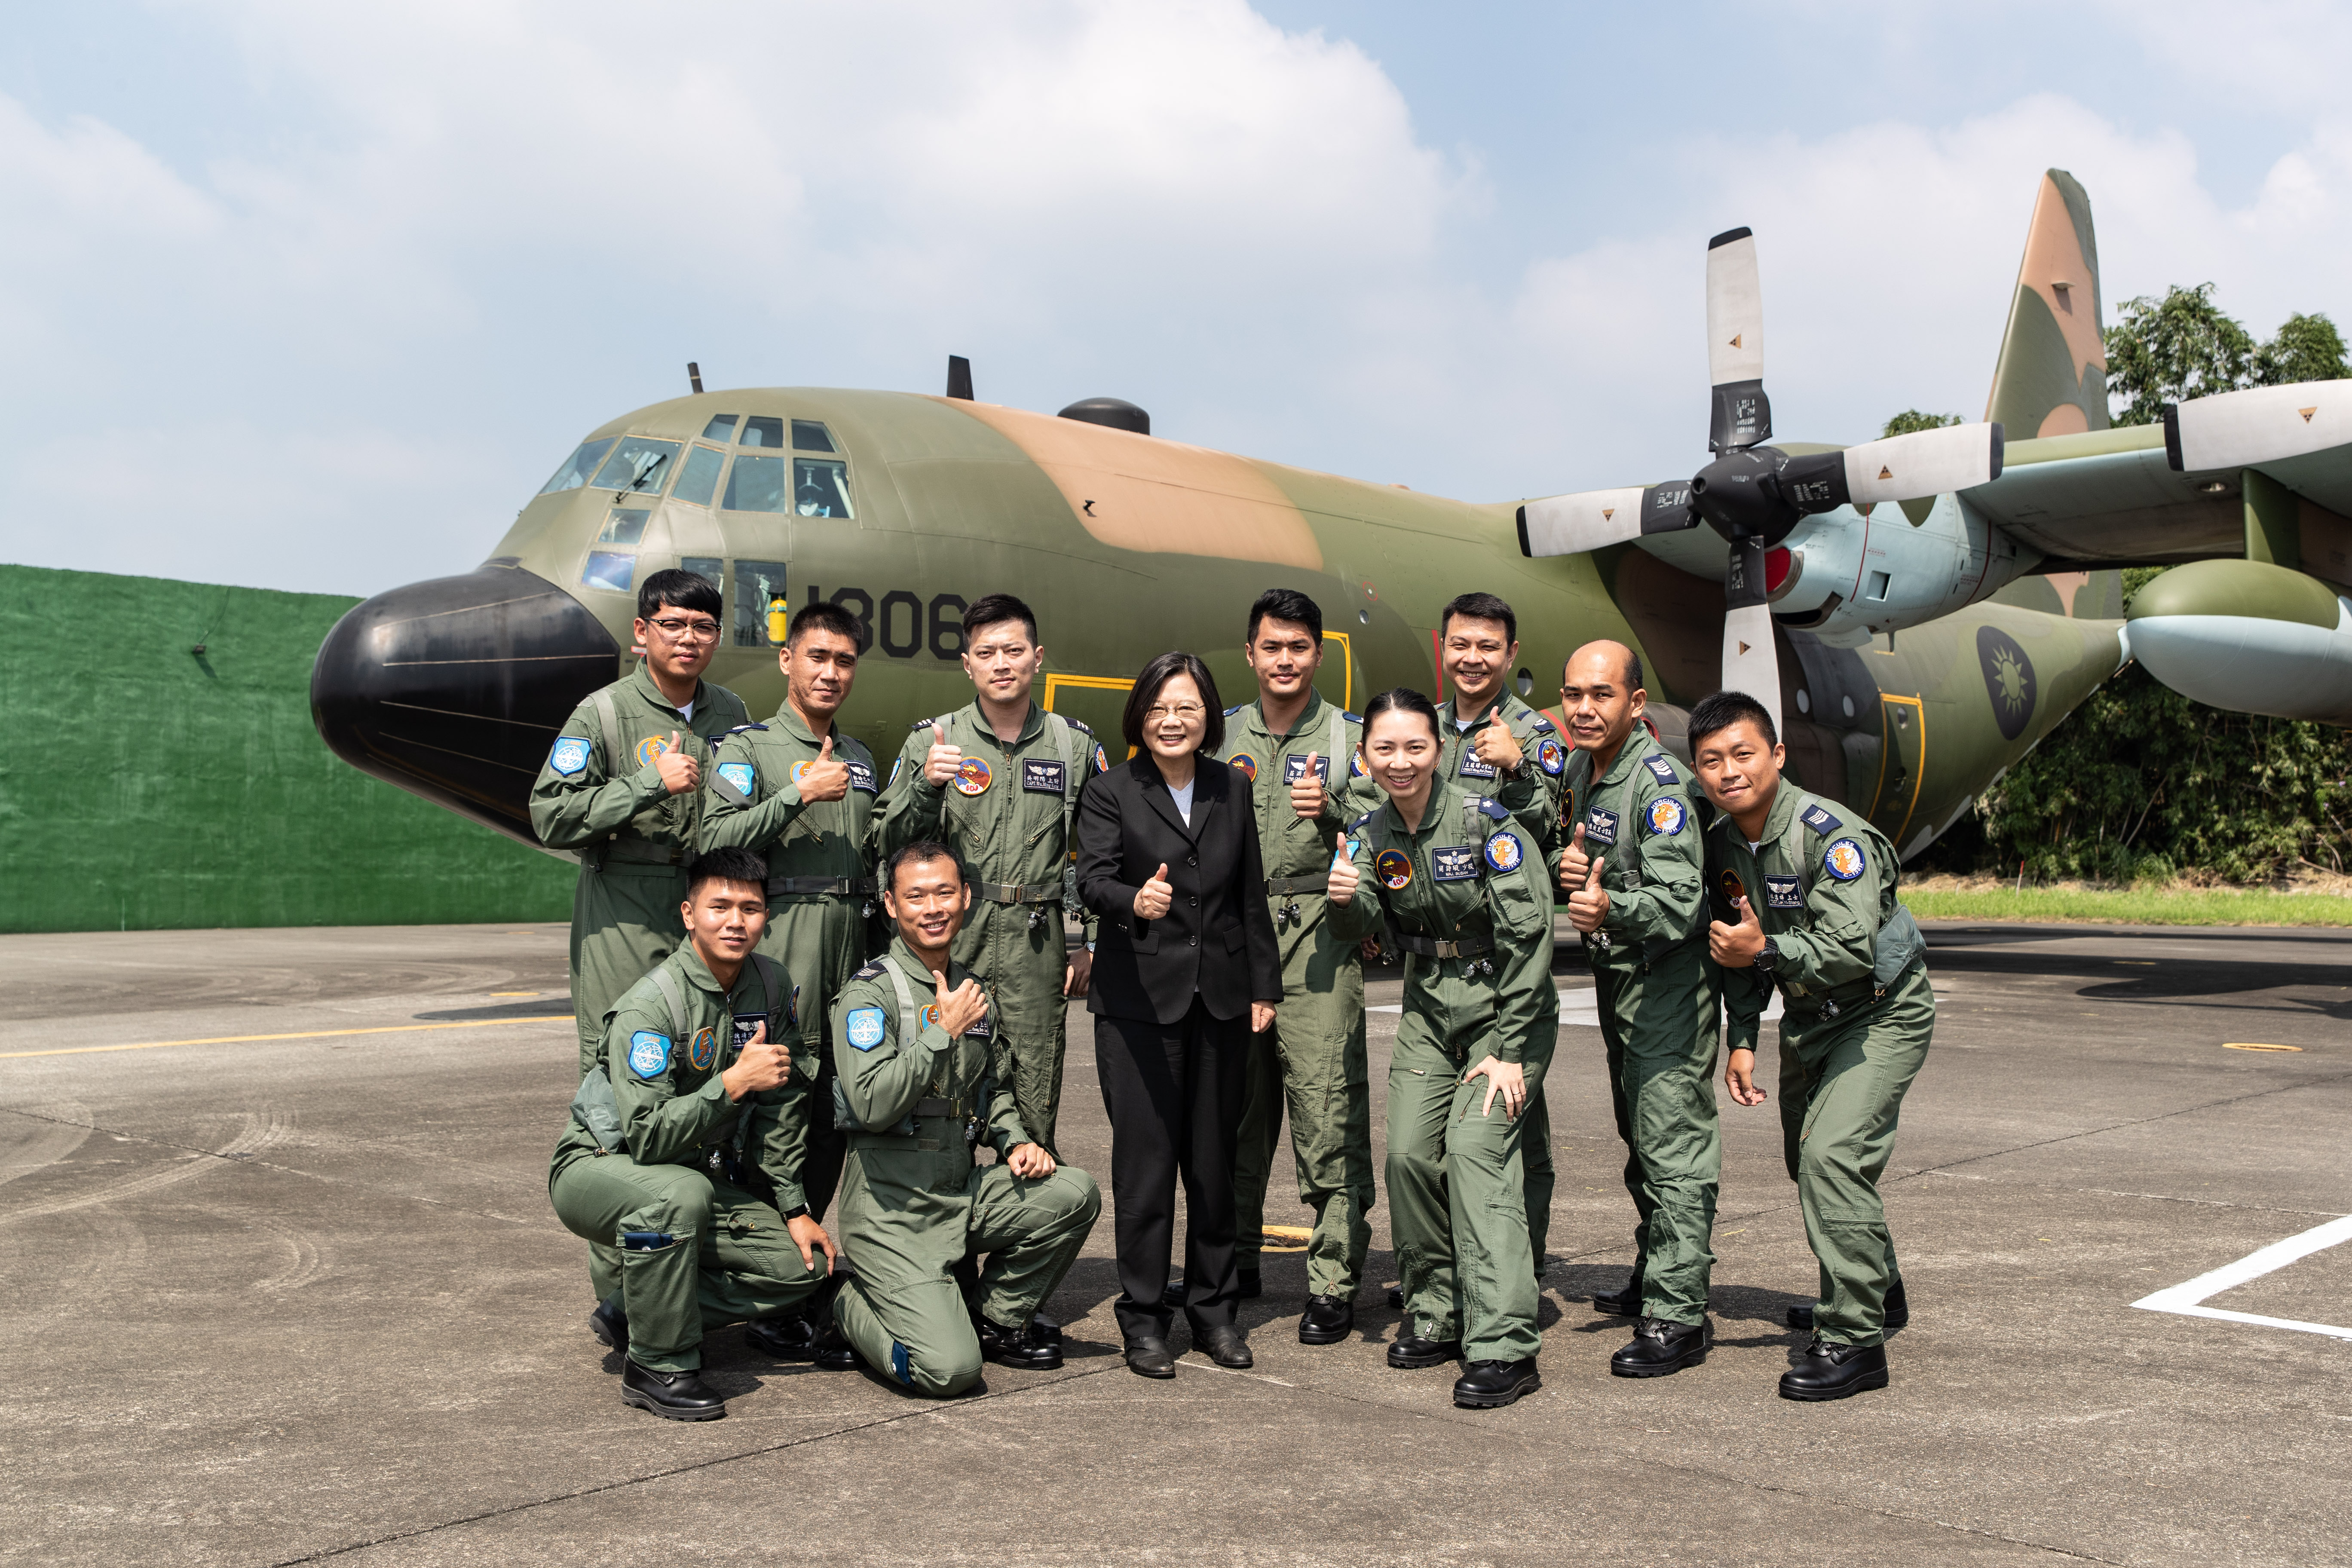 President Tsai Inspected 6th Wing and Acknowledged Their Contribution as National Security Barrier